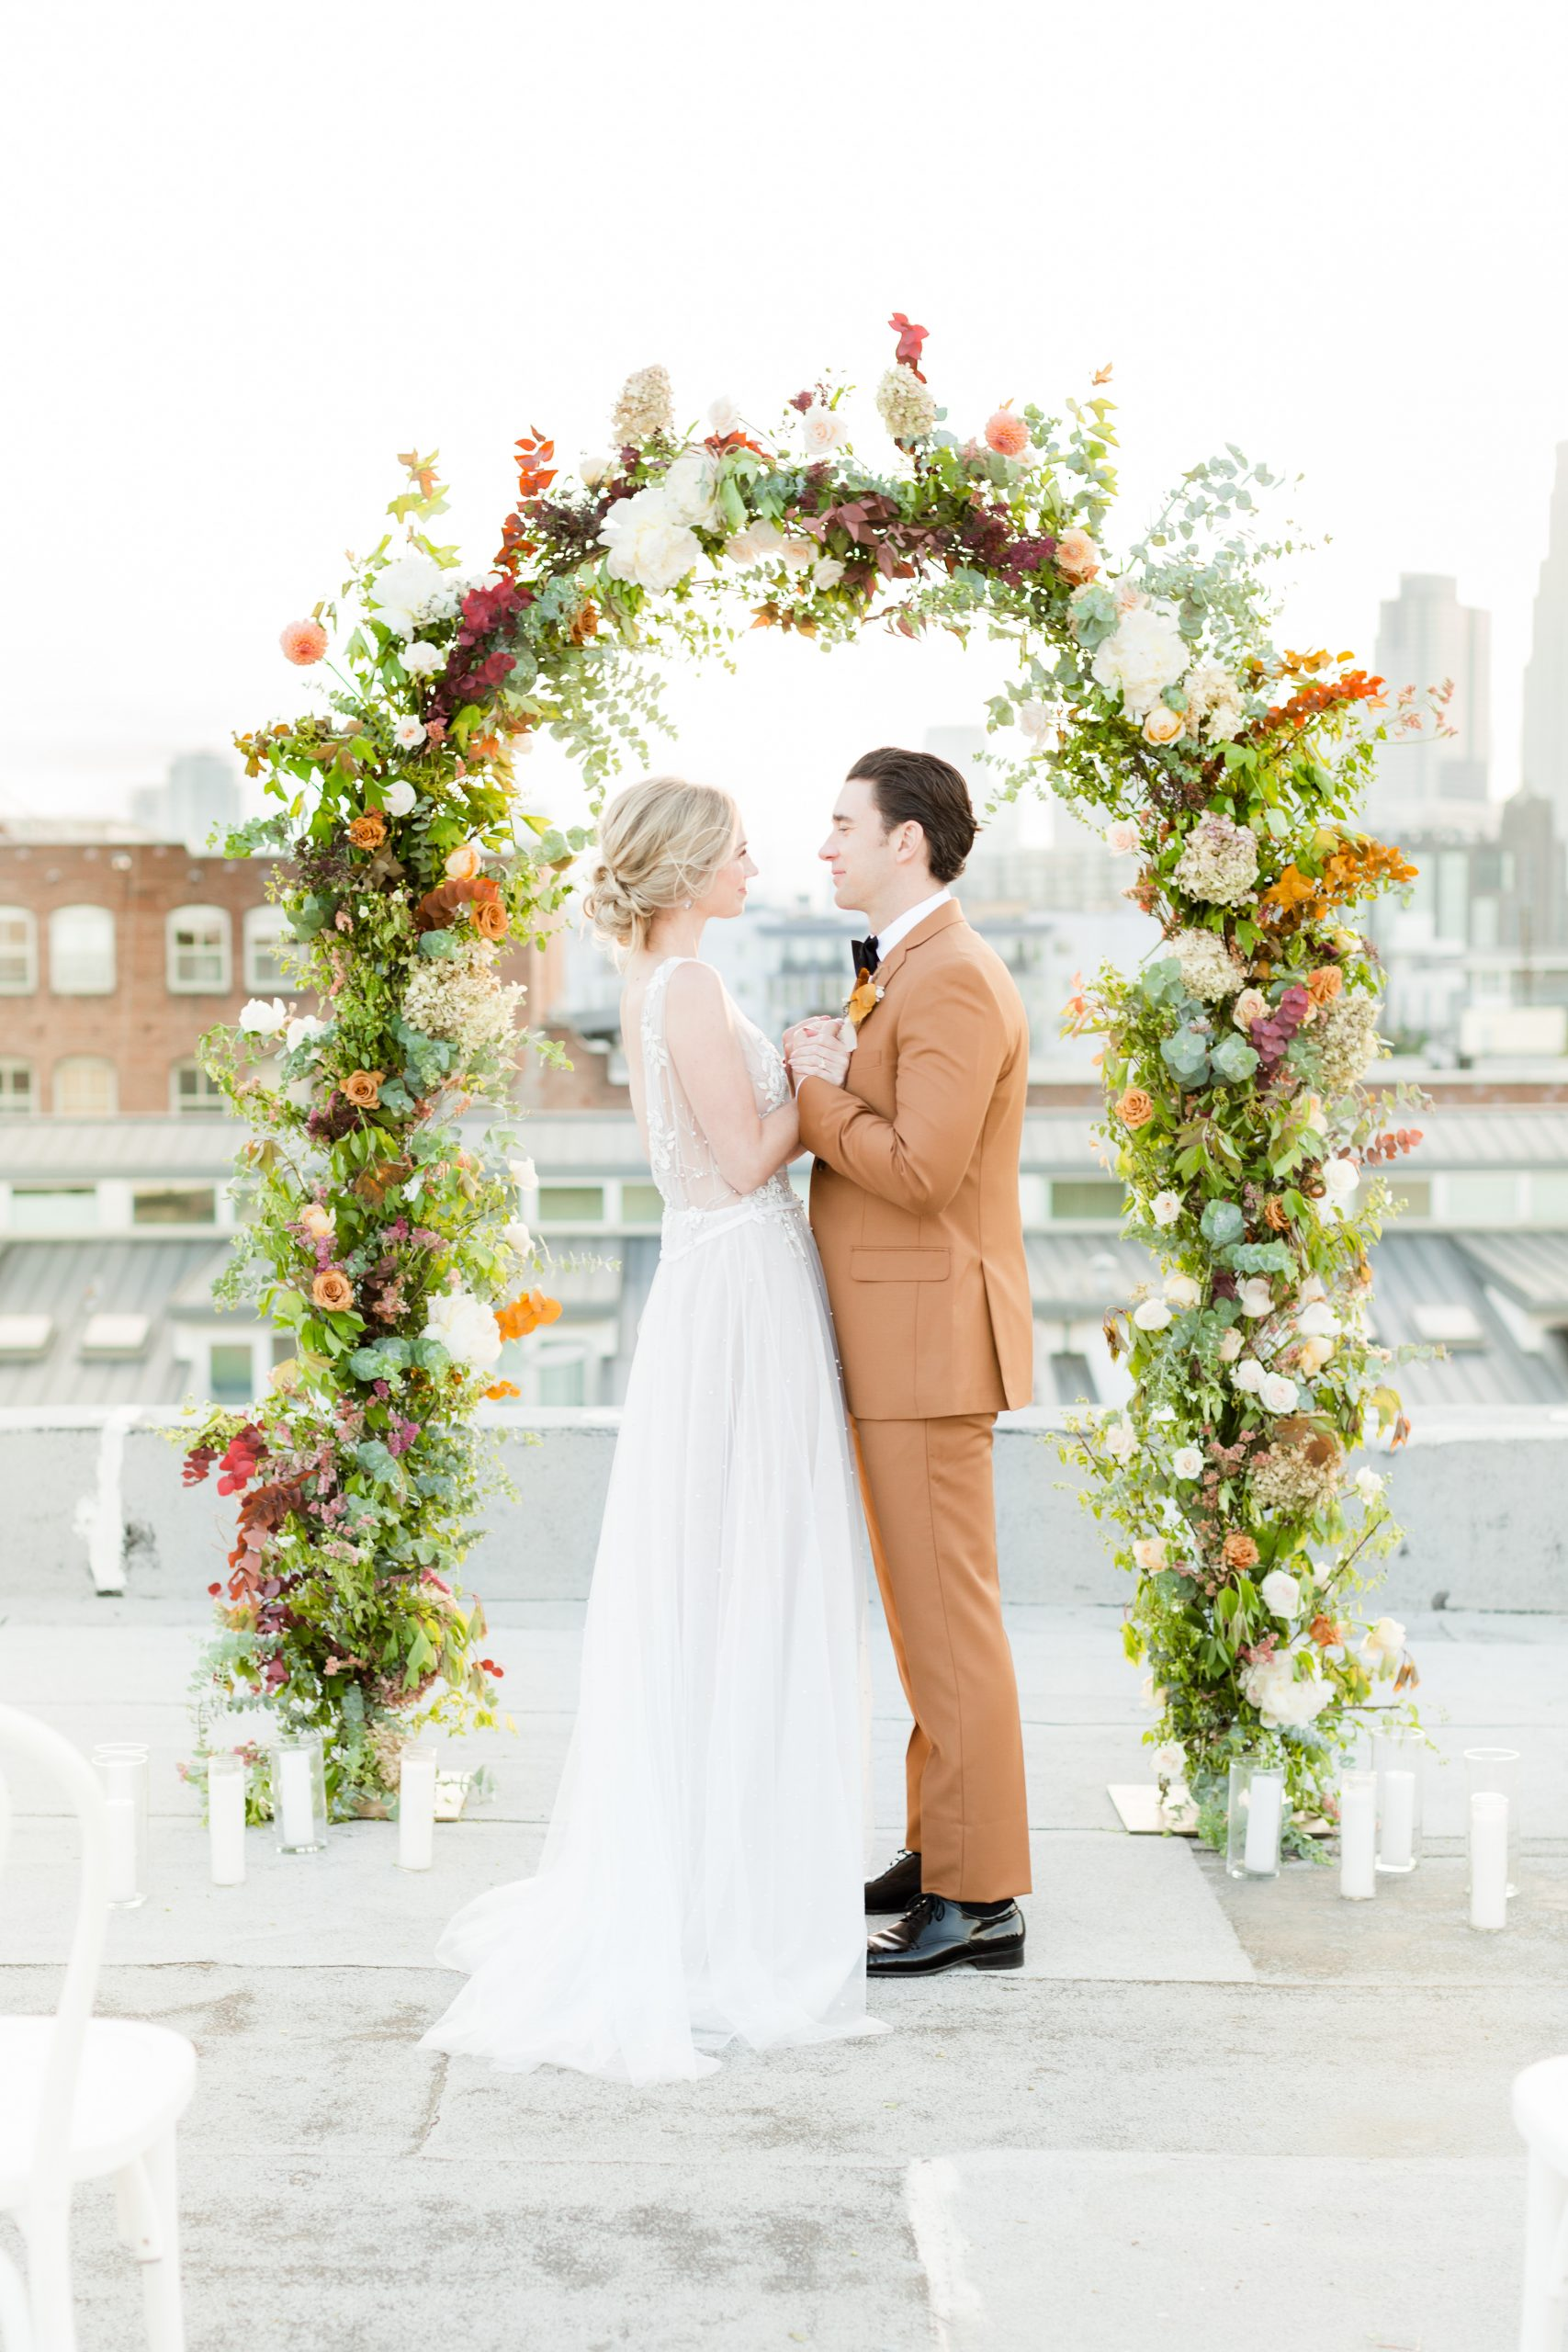 Bride & Groom in front of wedding arch on a rooftop in DTLA